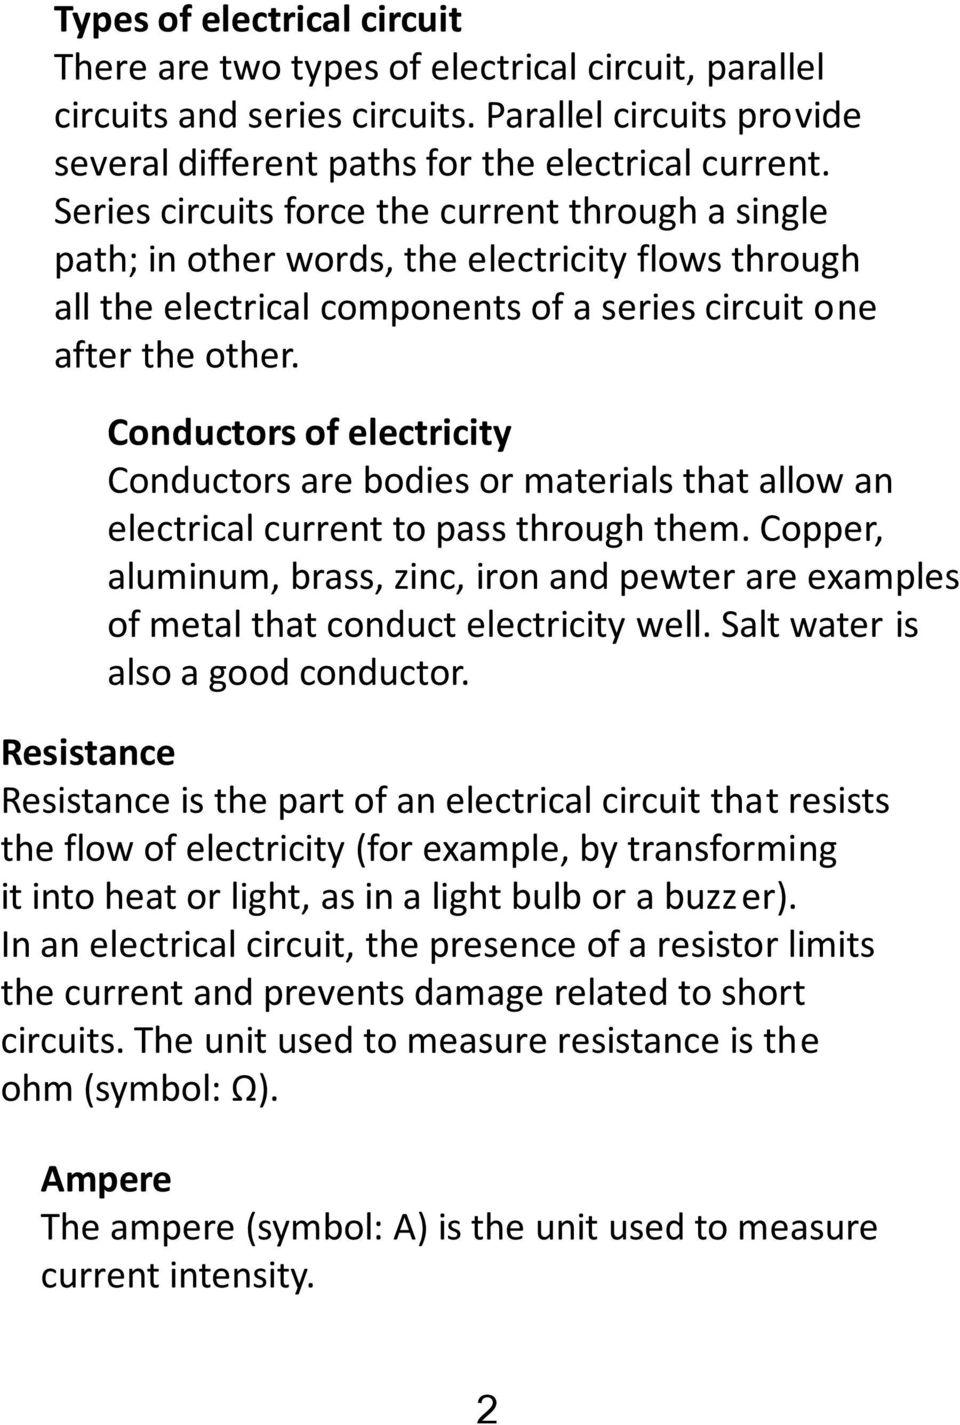 Electricity Unit Science And Technolgy Cycle 3 Name Group Teacher Parallel Circuit Resistance As Well Series Circuits Conductors Of Are Bodies Or Materials That Allow An Electrical Current To Pass Through